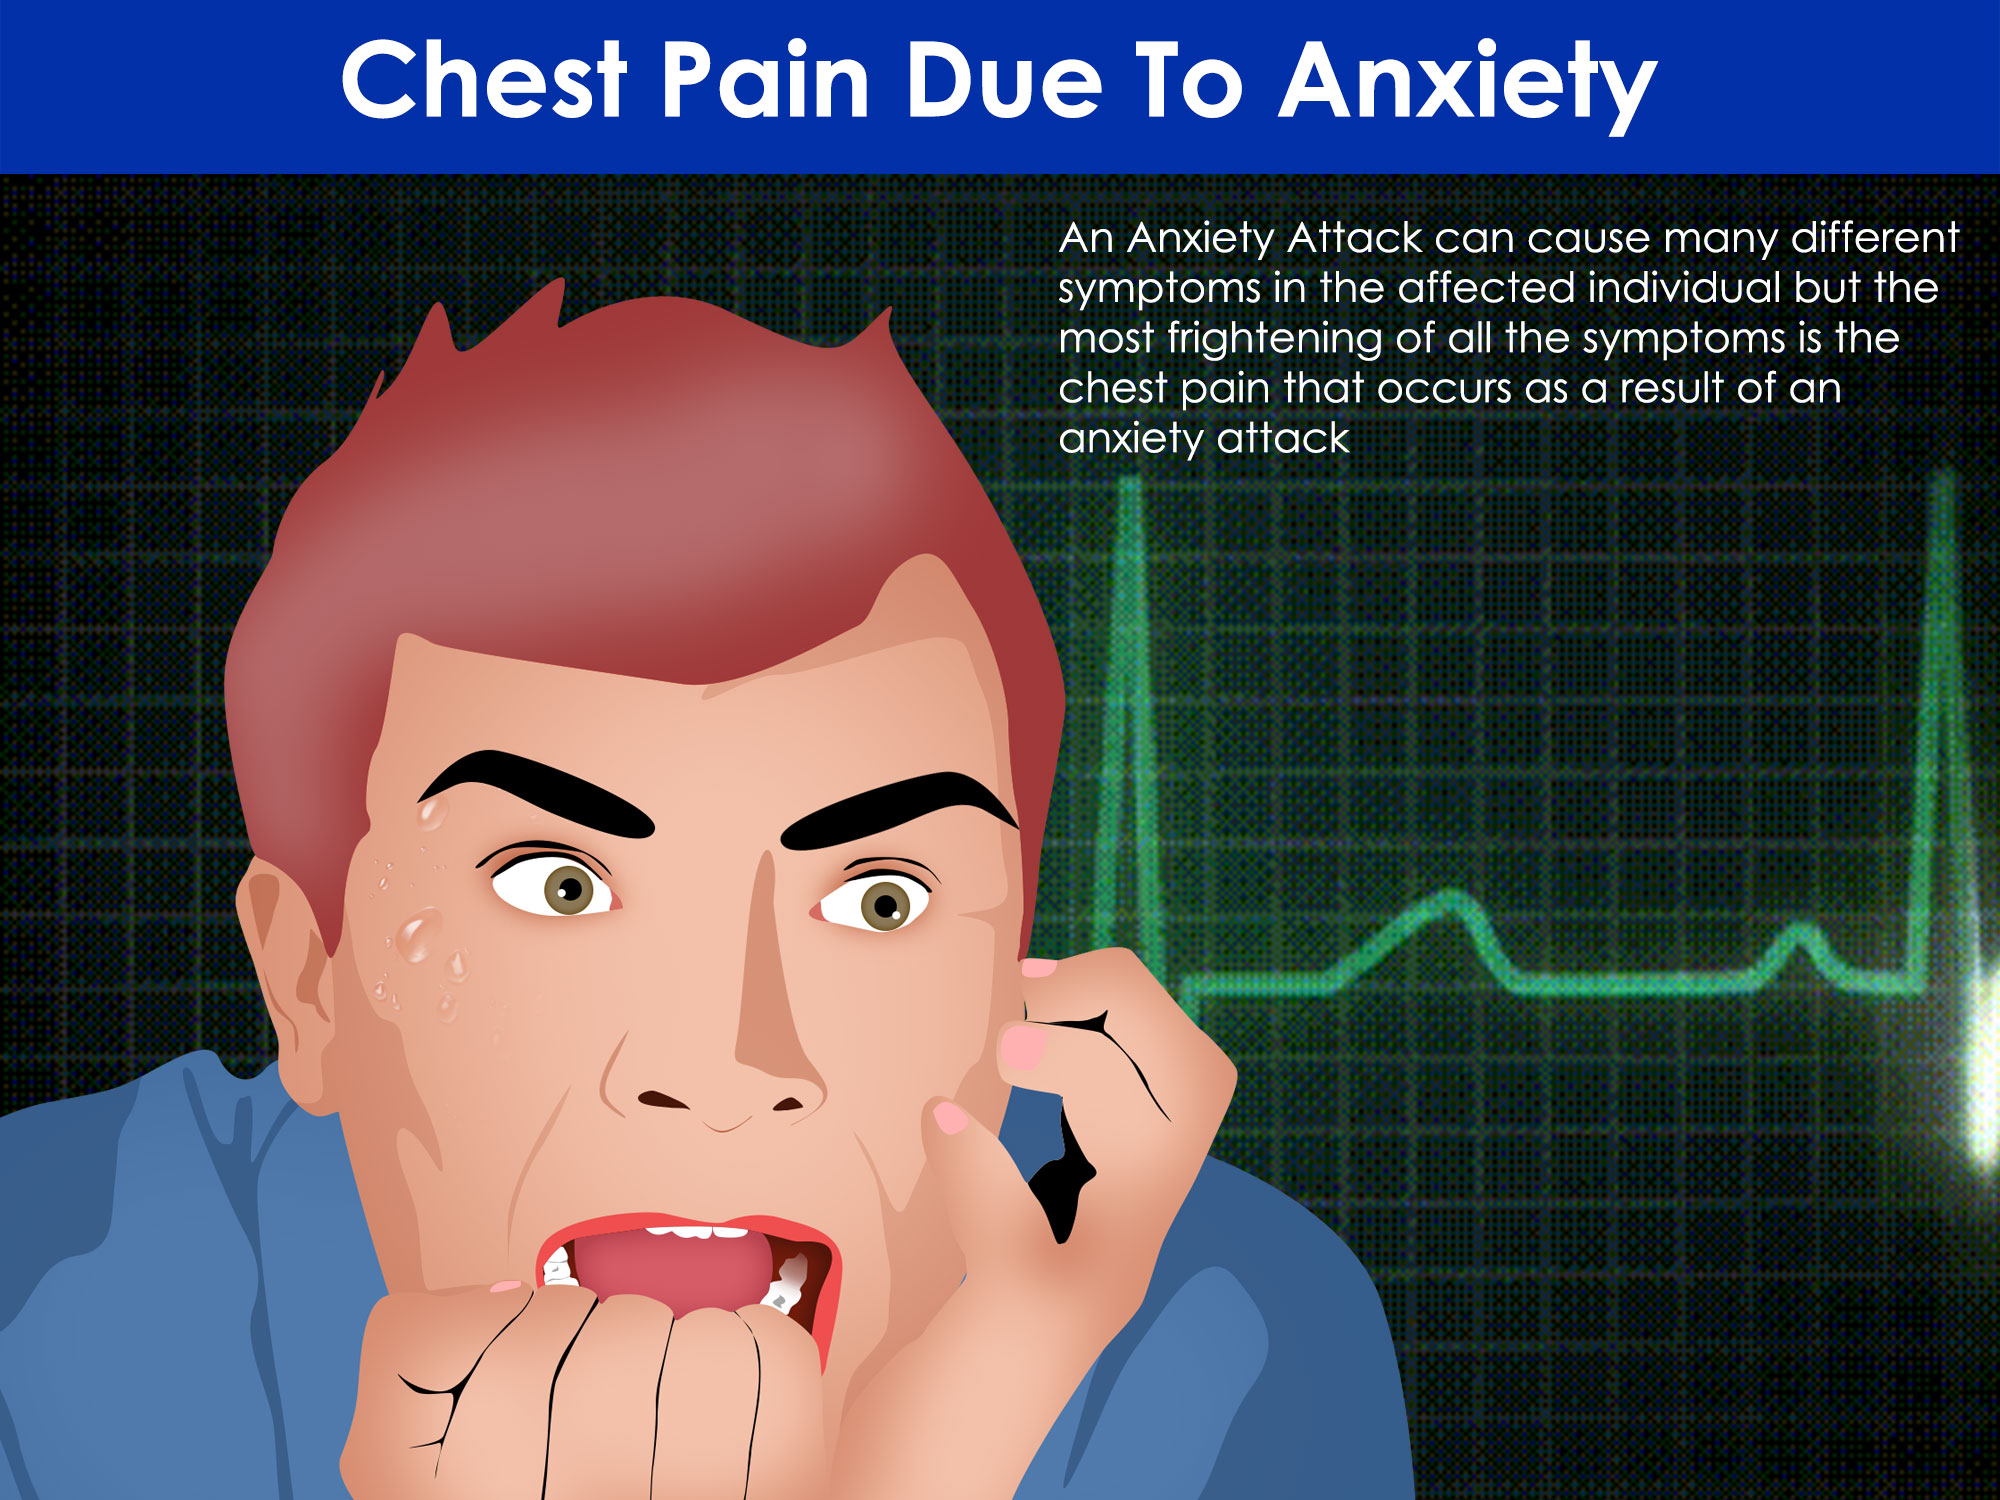 How To Get Rid Of Chest Pain Due To Anxiety